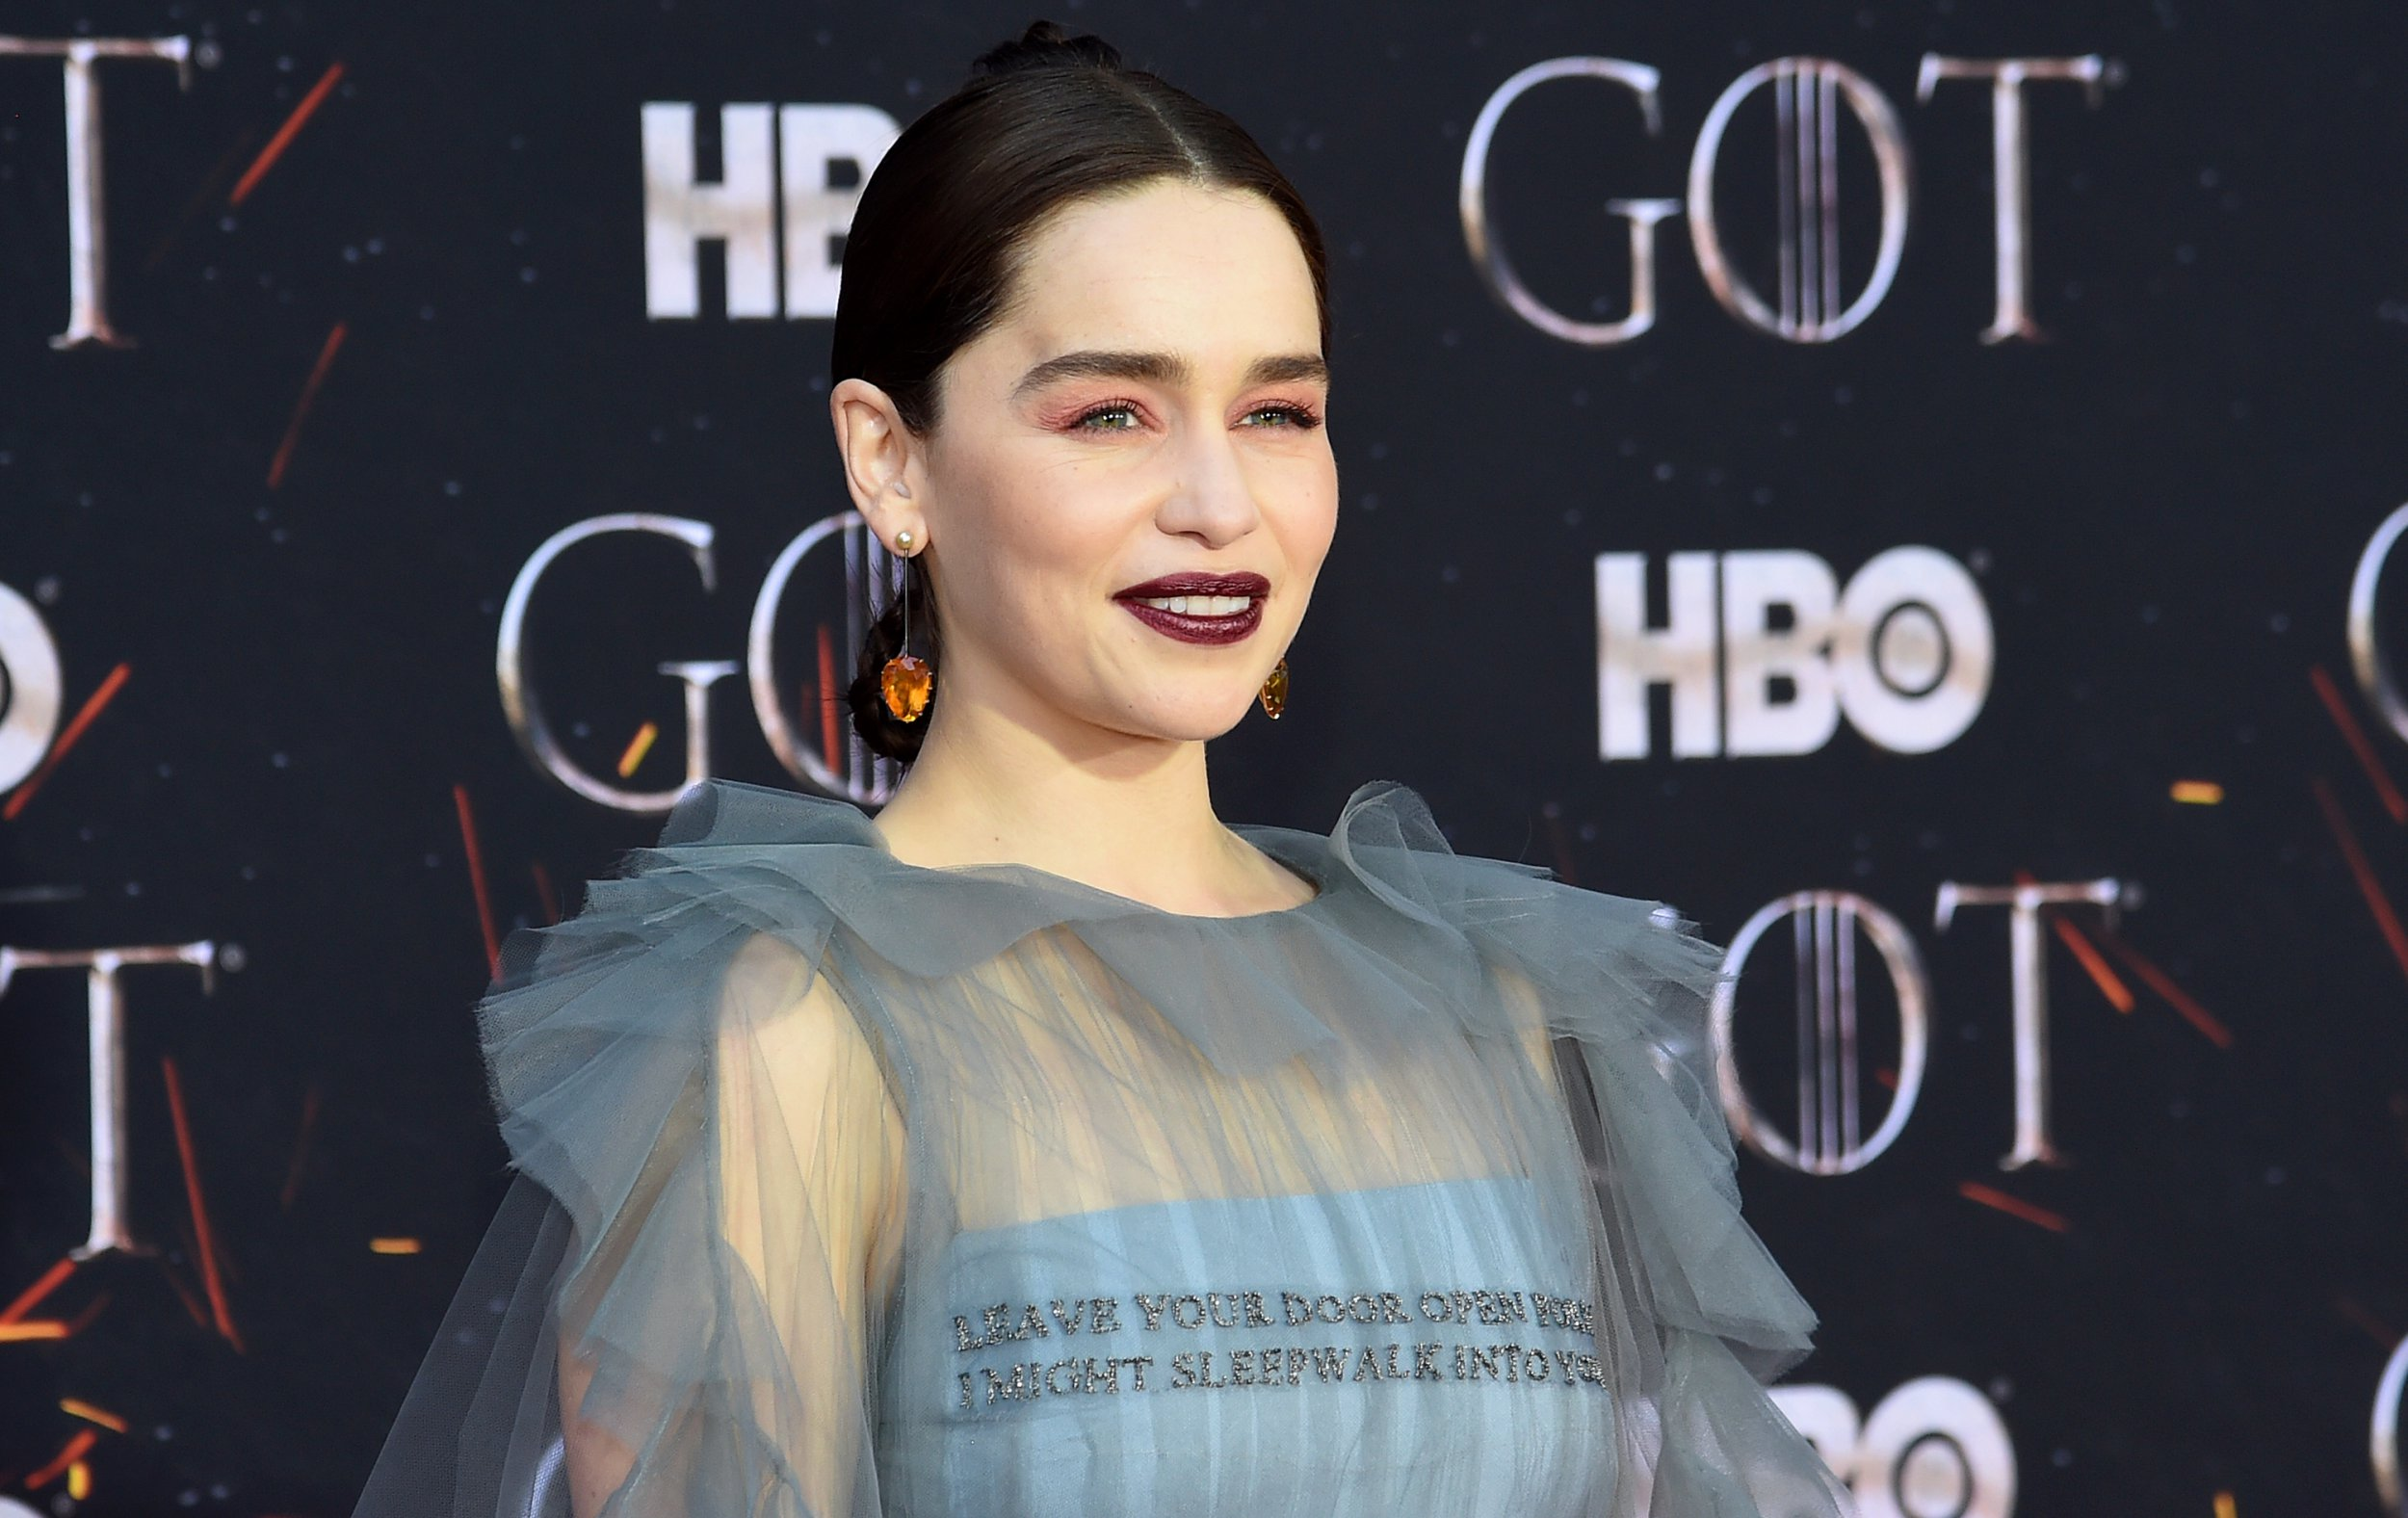 Game Of Thrones' Emilia Clarke worried she'd never be able to act again after life-threatening aneurysm